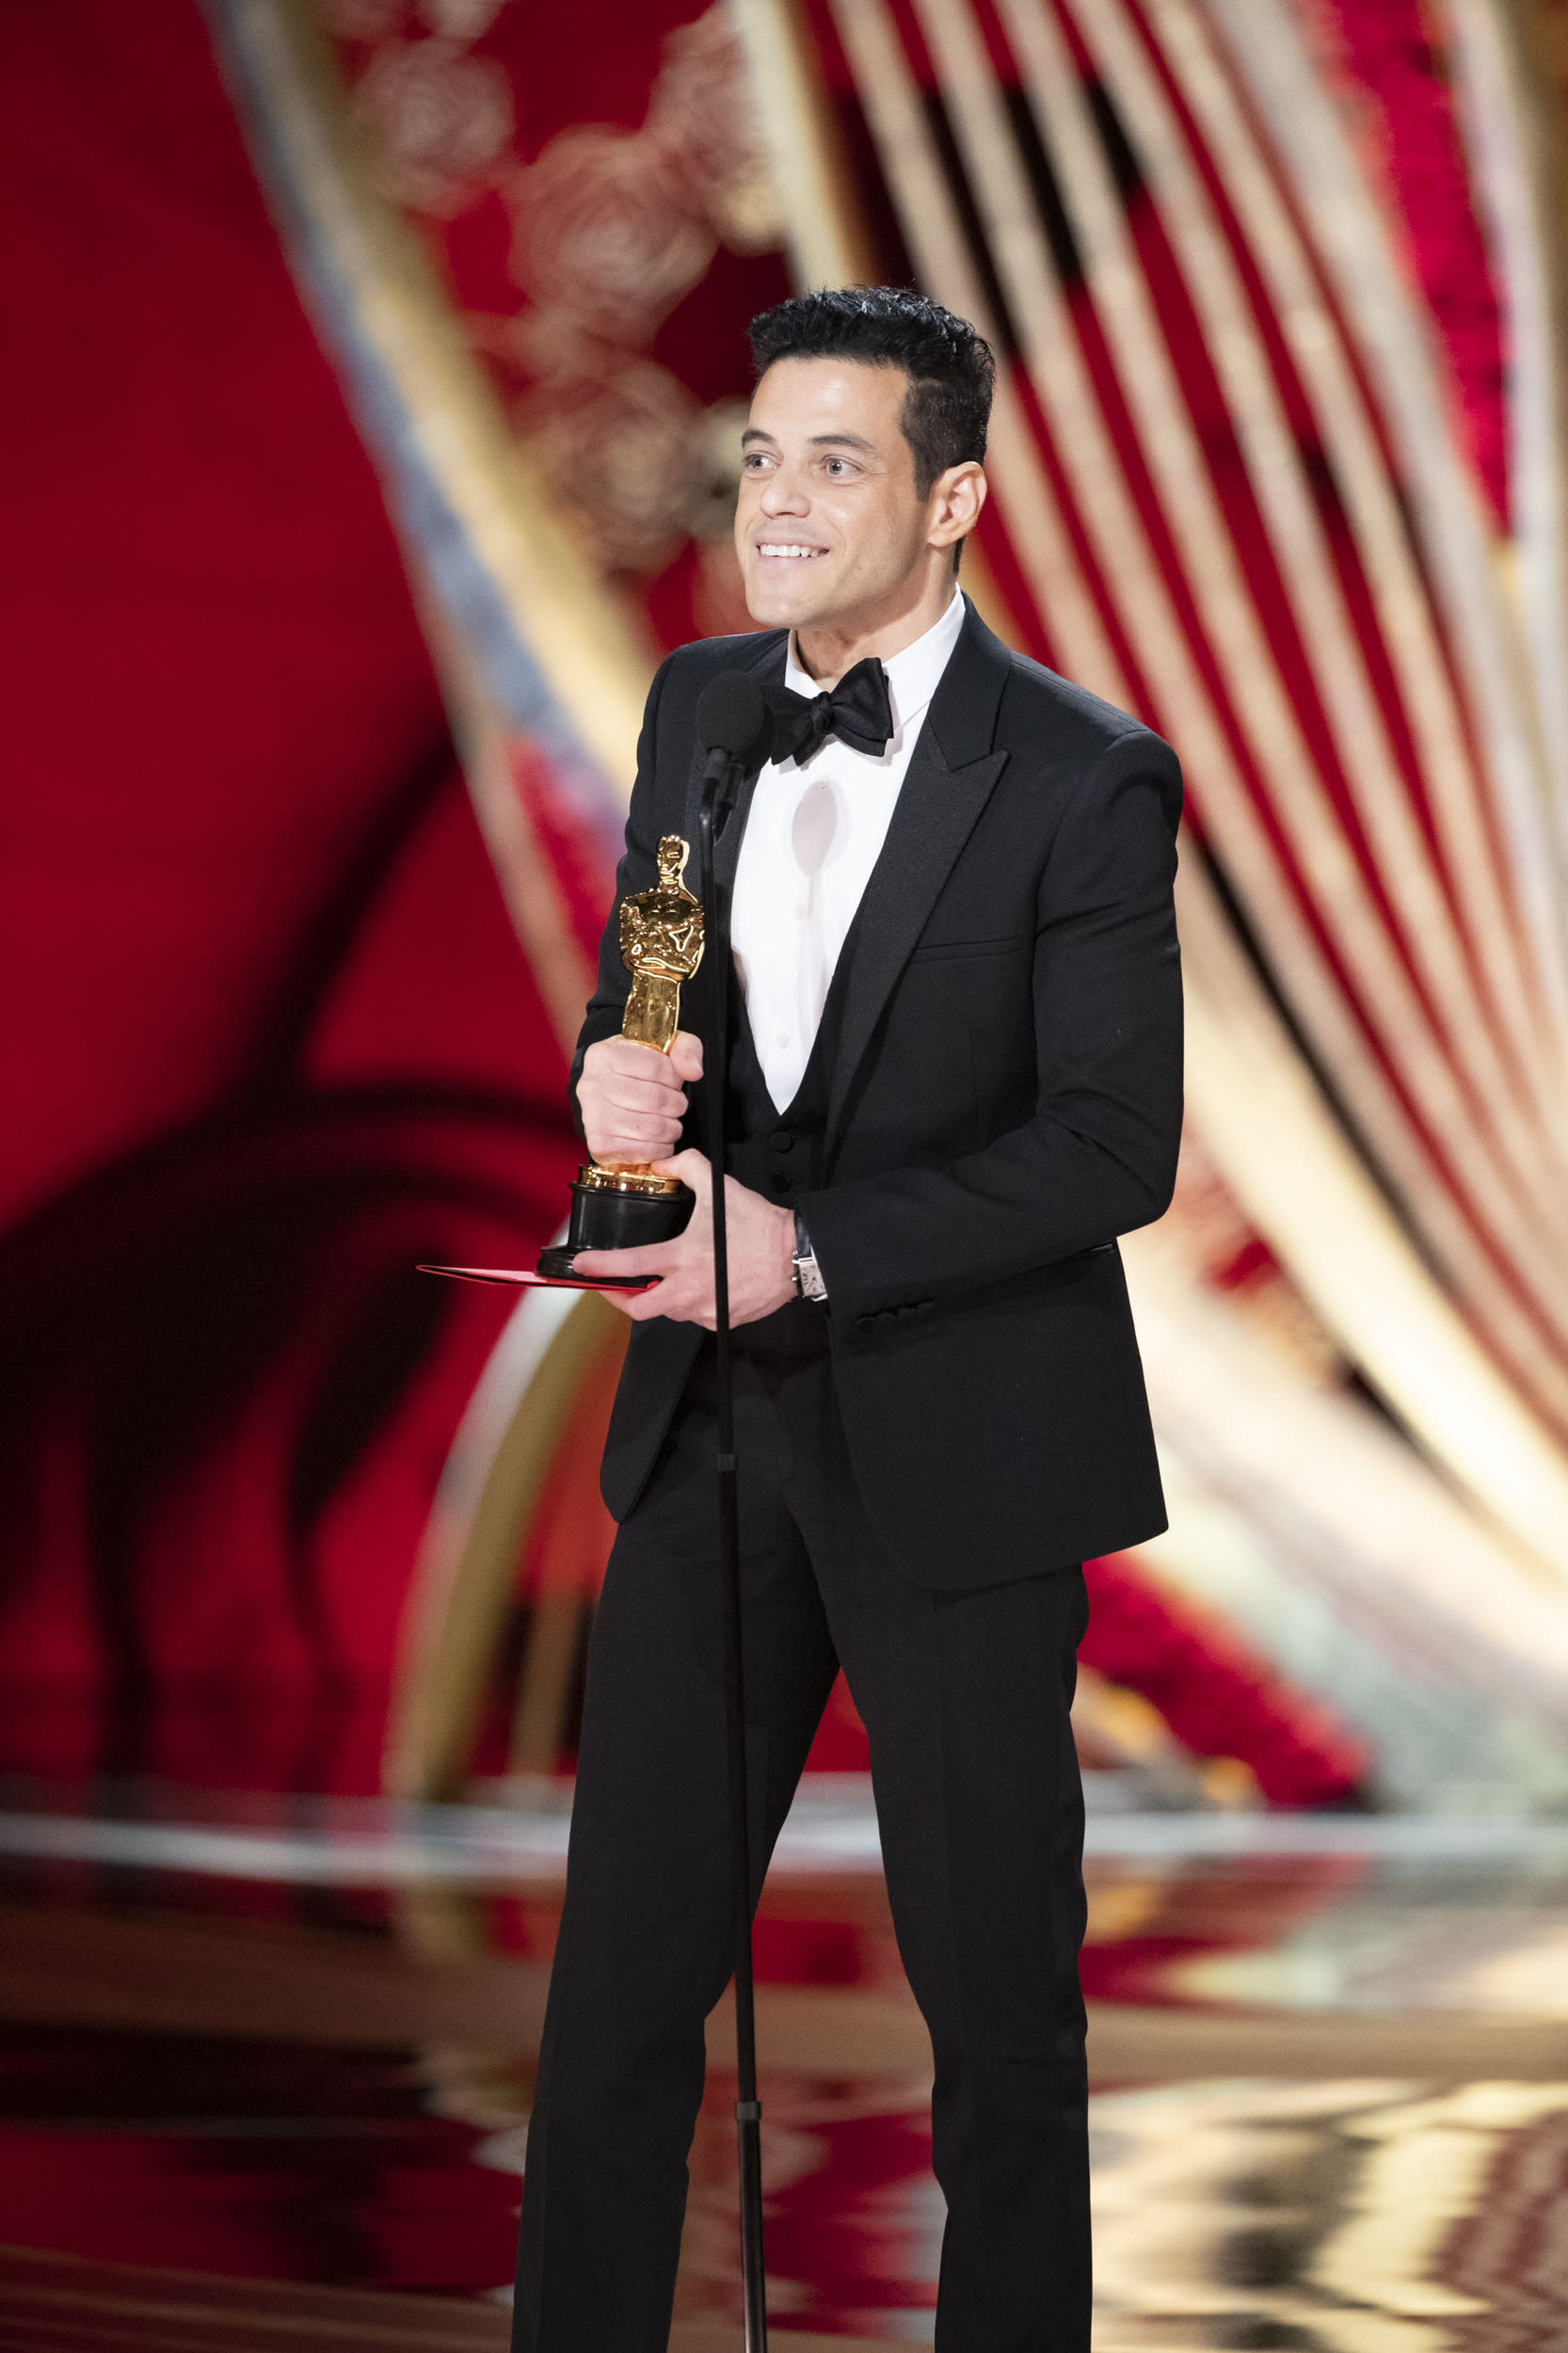 THE OSCARS® - The 91st Oscars® broadcasts live on Sunday, Feb. 24, 2019, at the Dolby Theatre® at Hollywood & Highland Center® in Hollywood and will be televised live on The ABC Television Network at 8:00 p.m. EST/5:00 p.m. PST.  (Craig Sjodin via Getty Images) RAMI MALEK